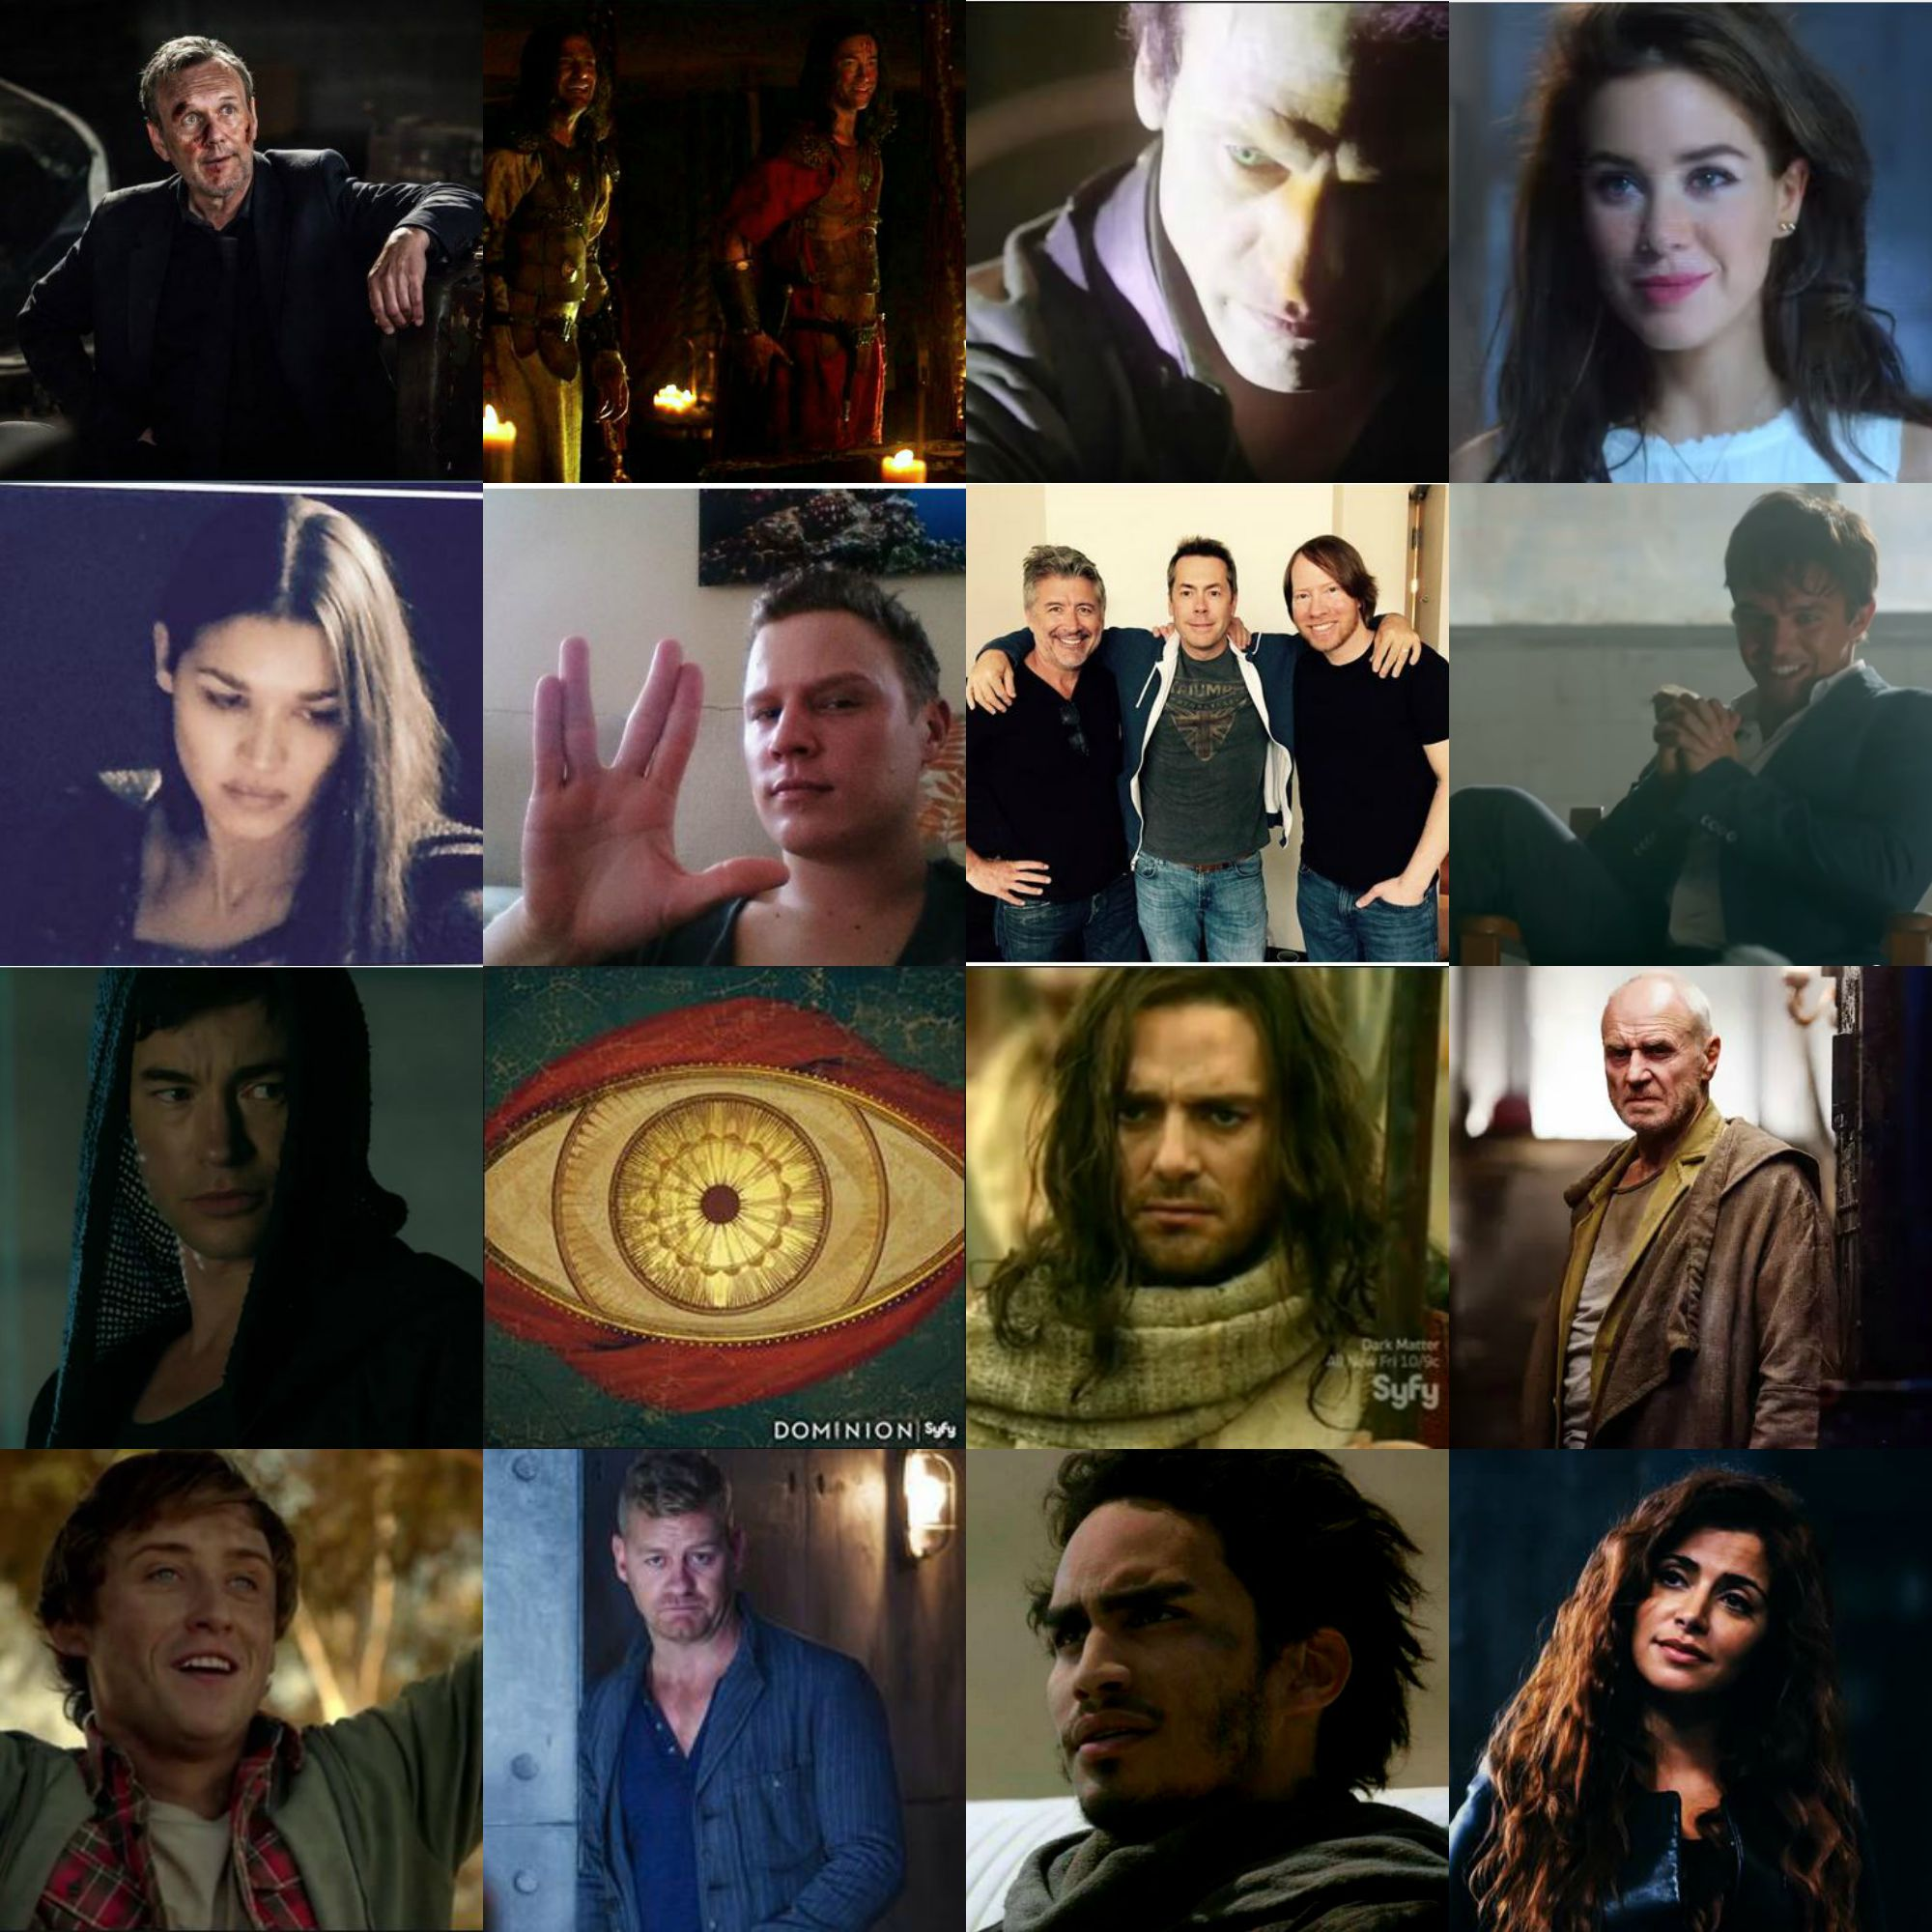 #Dominion - Quality Programming at its BEST.  Reboot #Dominion @Syfy @NBCUniversal @UCPisTV https://t.co/Q8rMoK1BoN